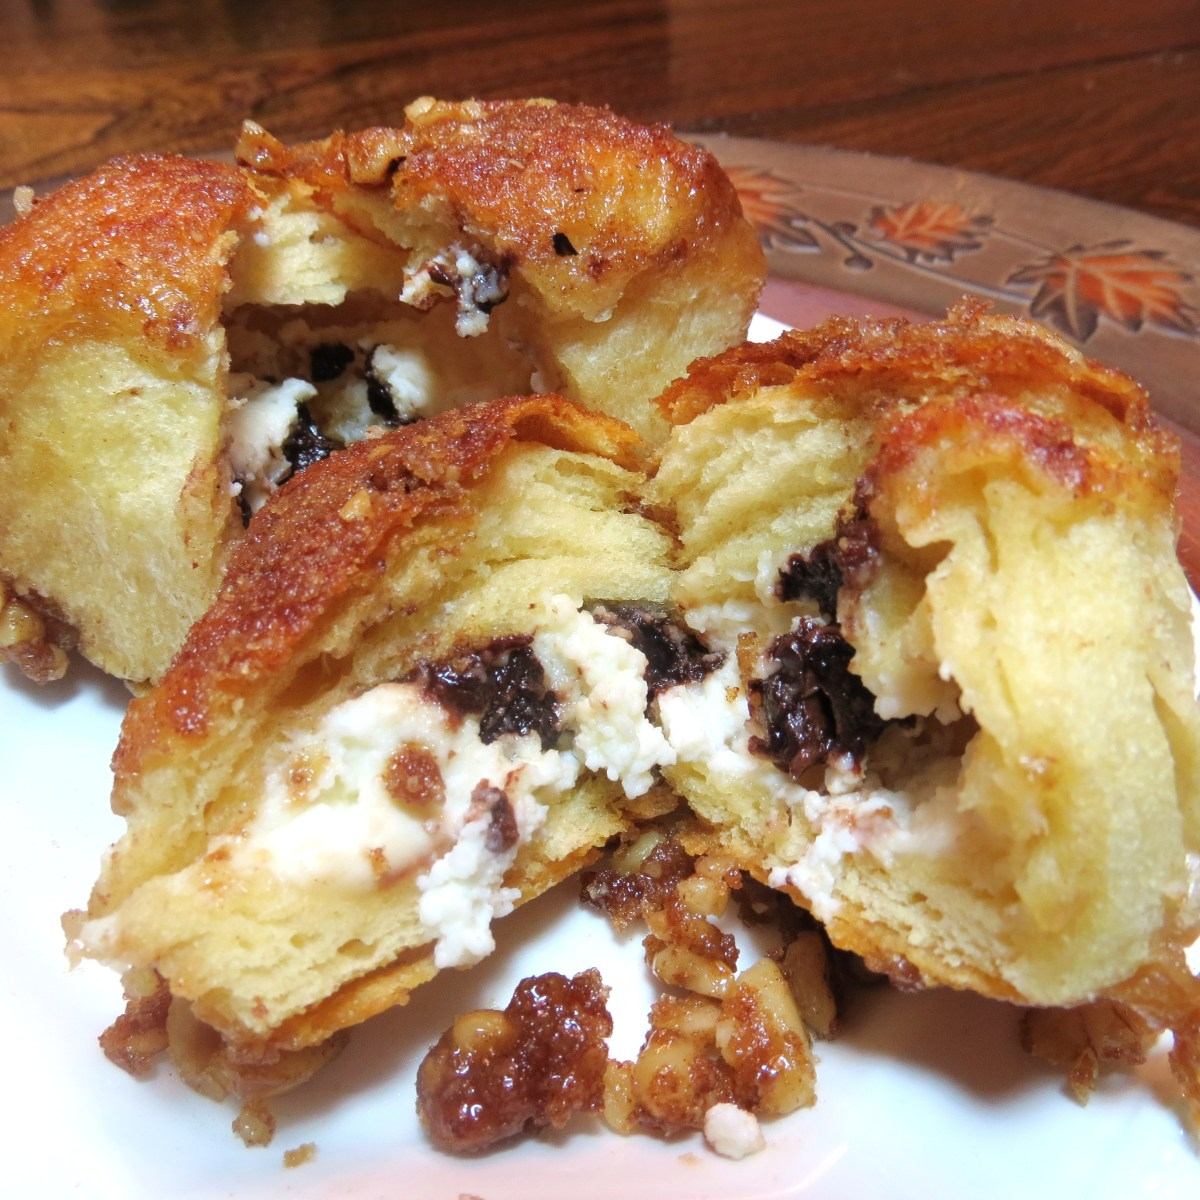 Cream Cheese and Chocolate Filled Monkey Bread  (Uses a 9 x 13 pan)